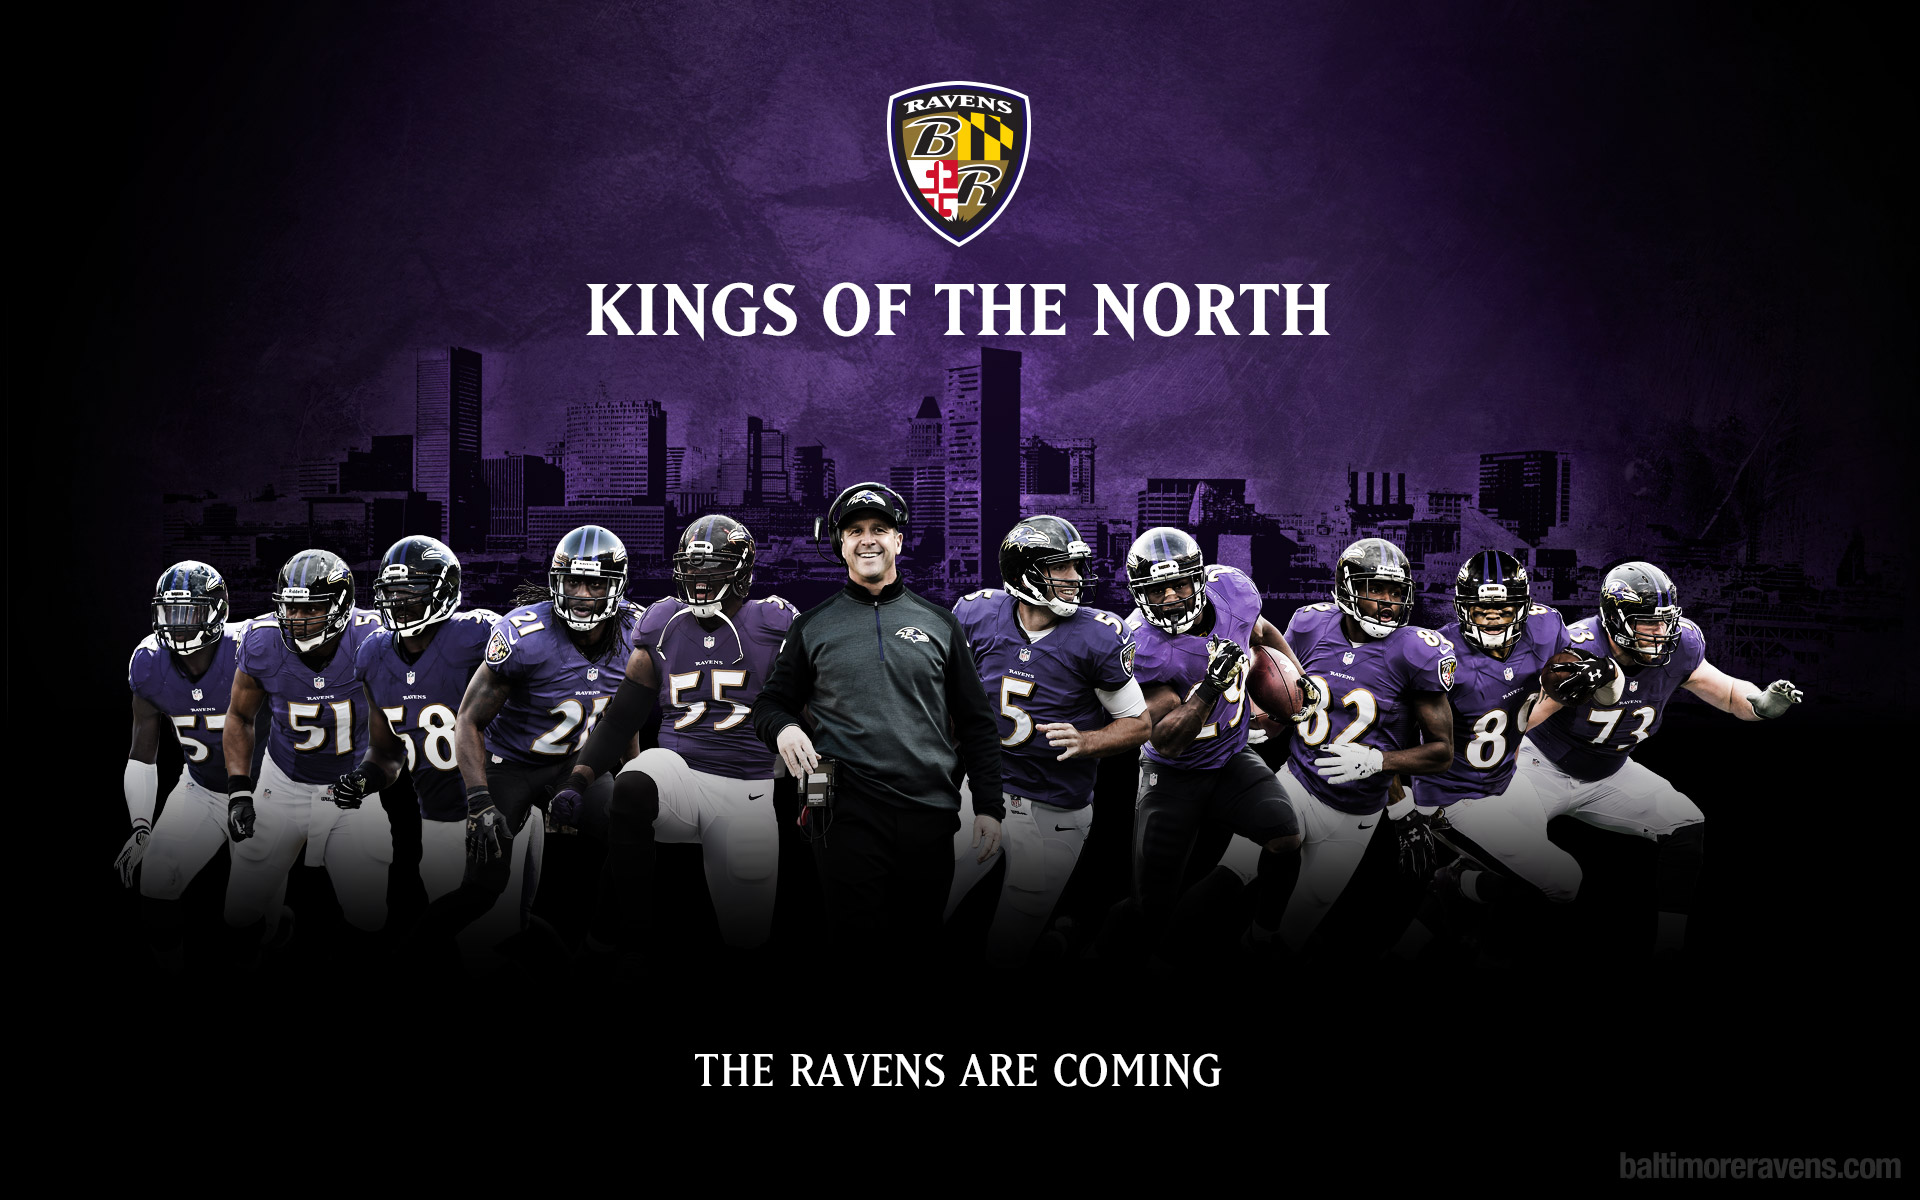 [Desktop Wallpaper] Kings Of The North 1920x1200 ravens 1920x1200